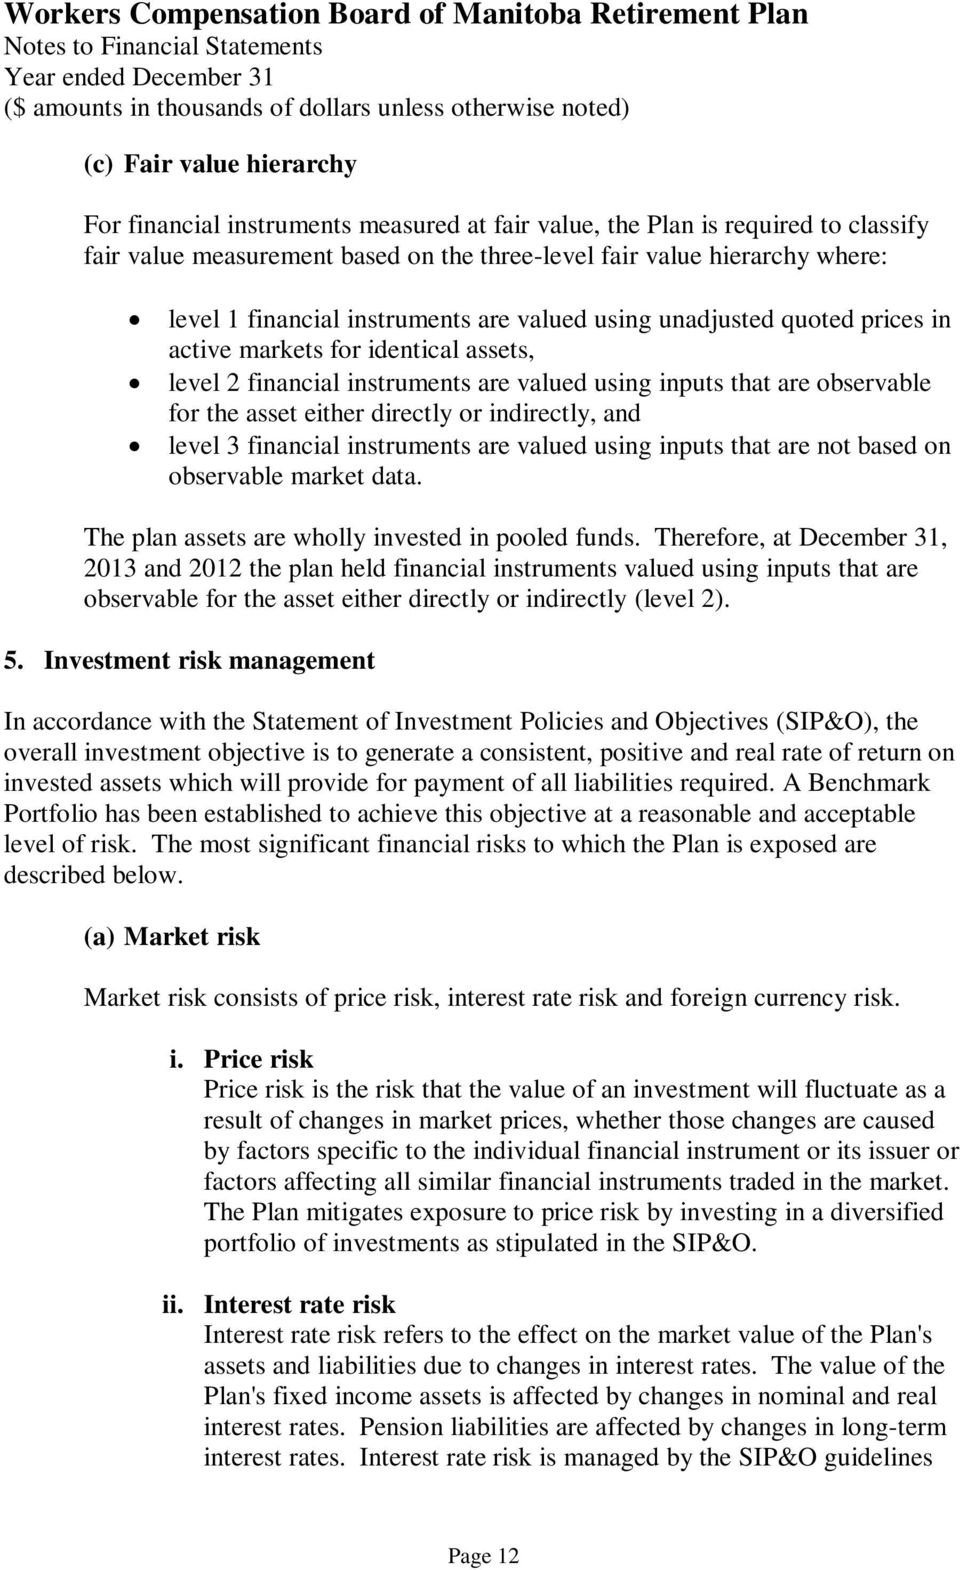 directly or indirectly, and level 3 financial instruments are valued using inputs that are not based on observable market data. The plan assets are wholly invested in pooled funds.